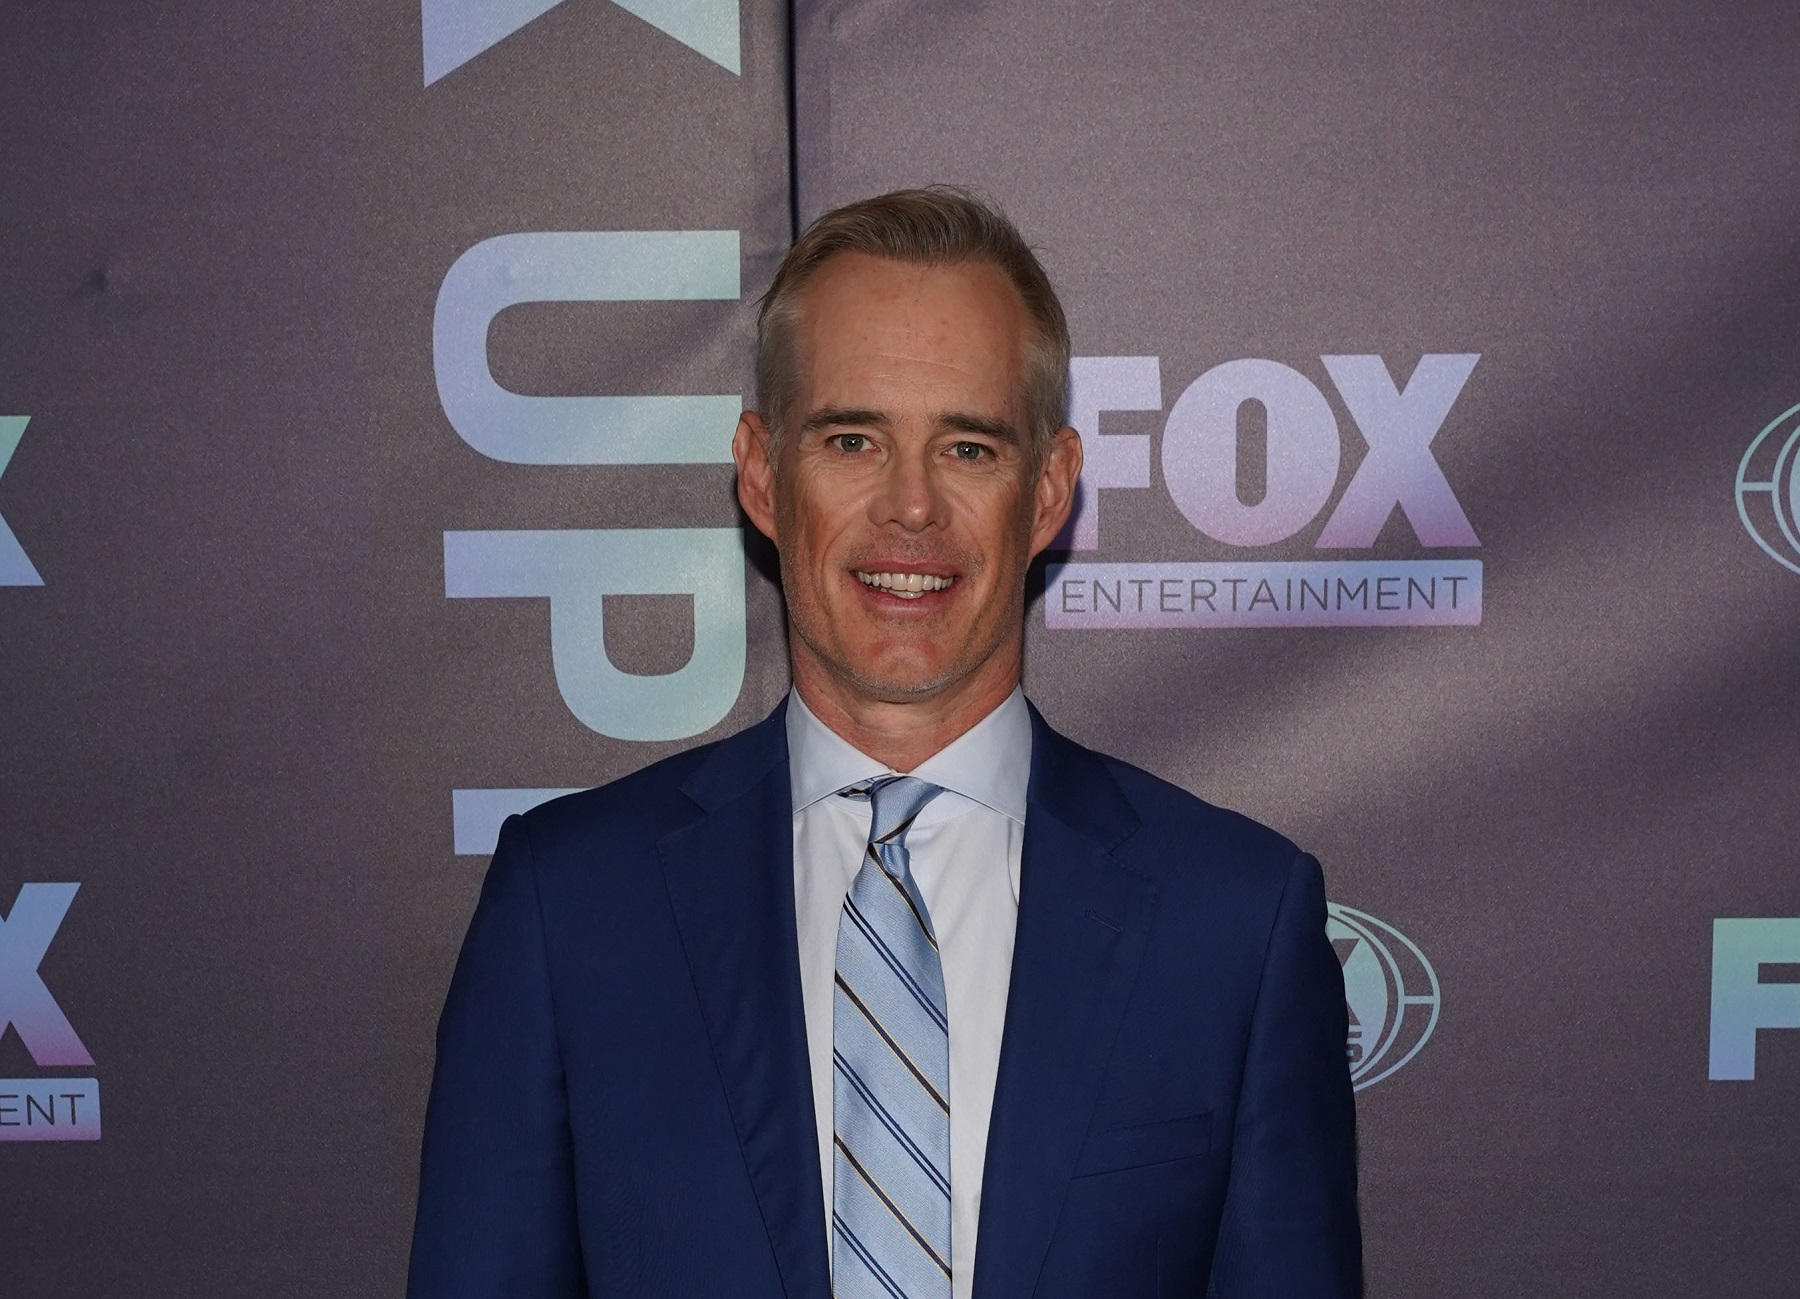 Joe Buck, Fox Sports